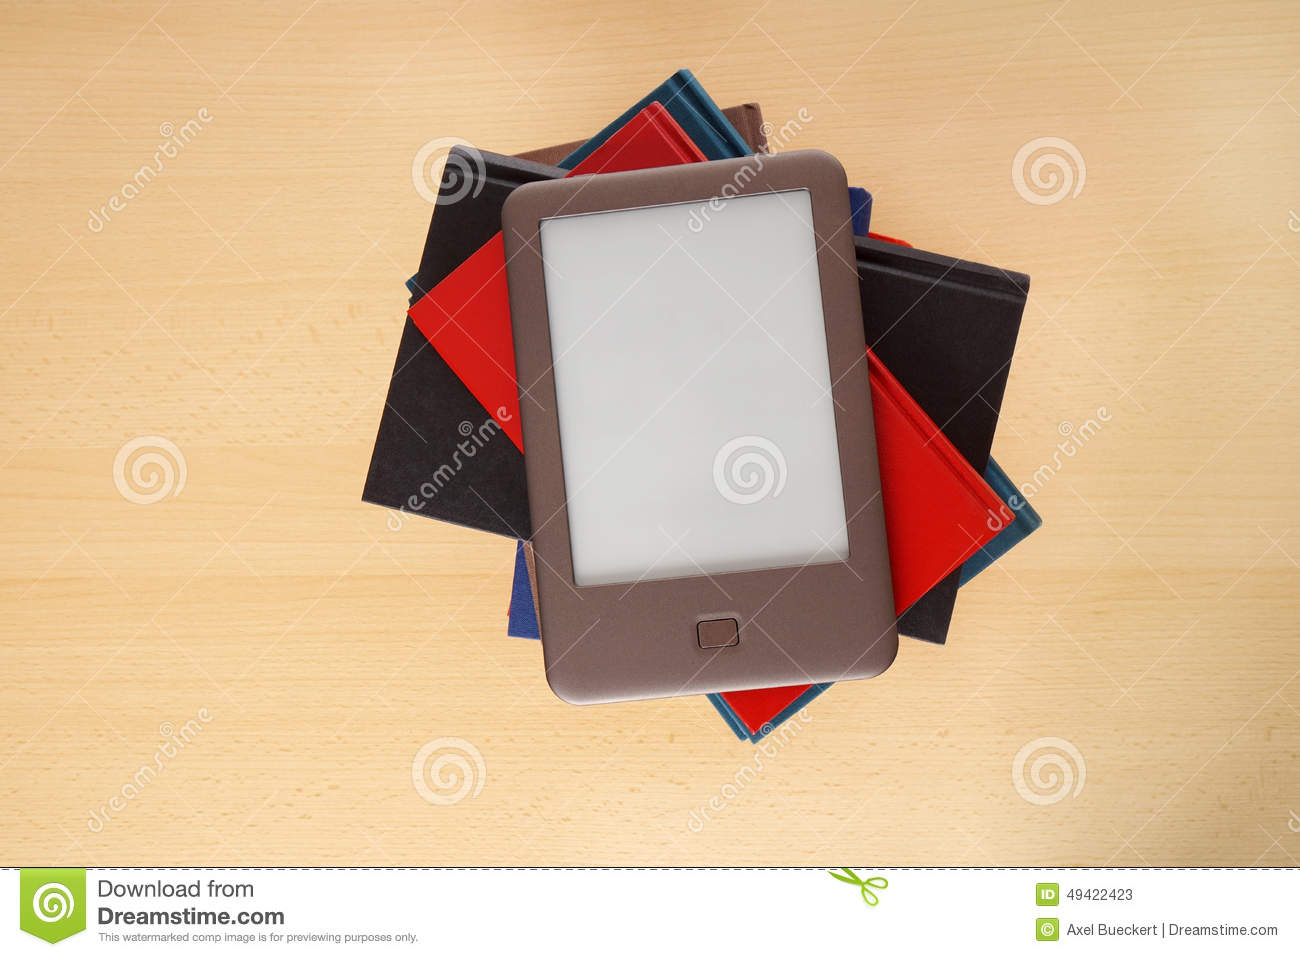 Ebook reader on pile of books